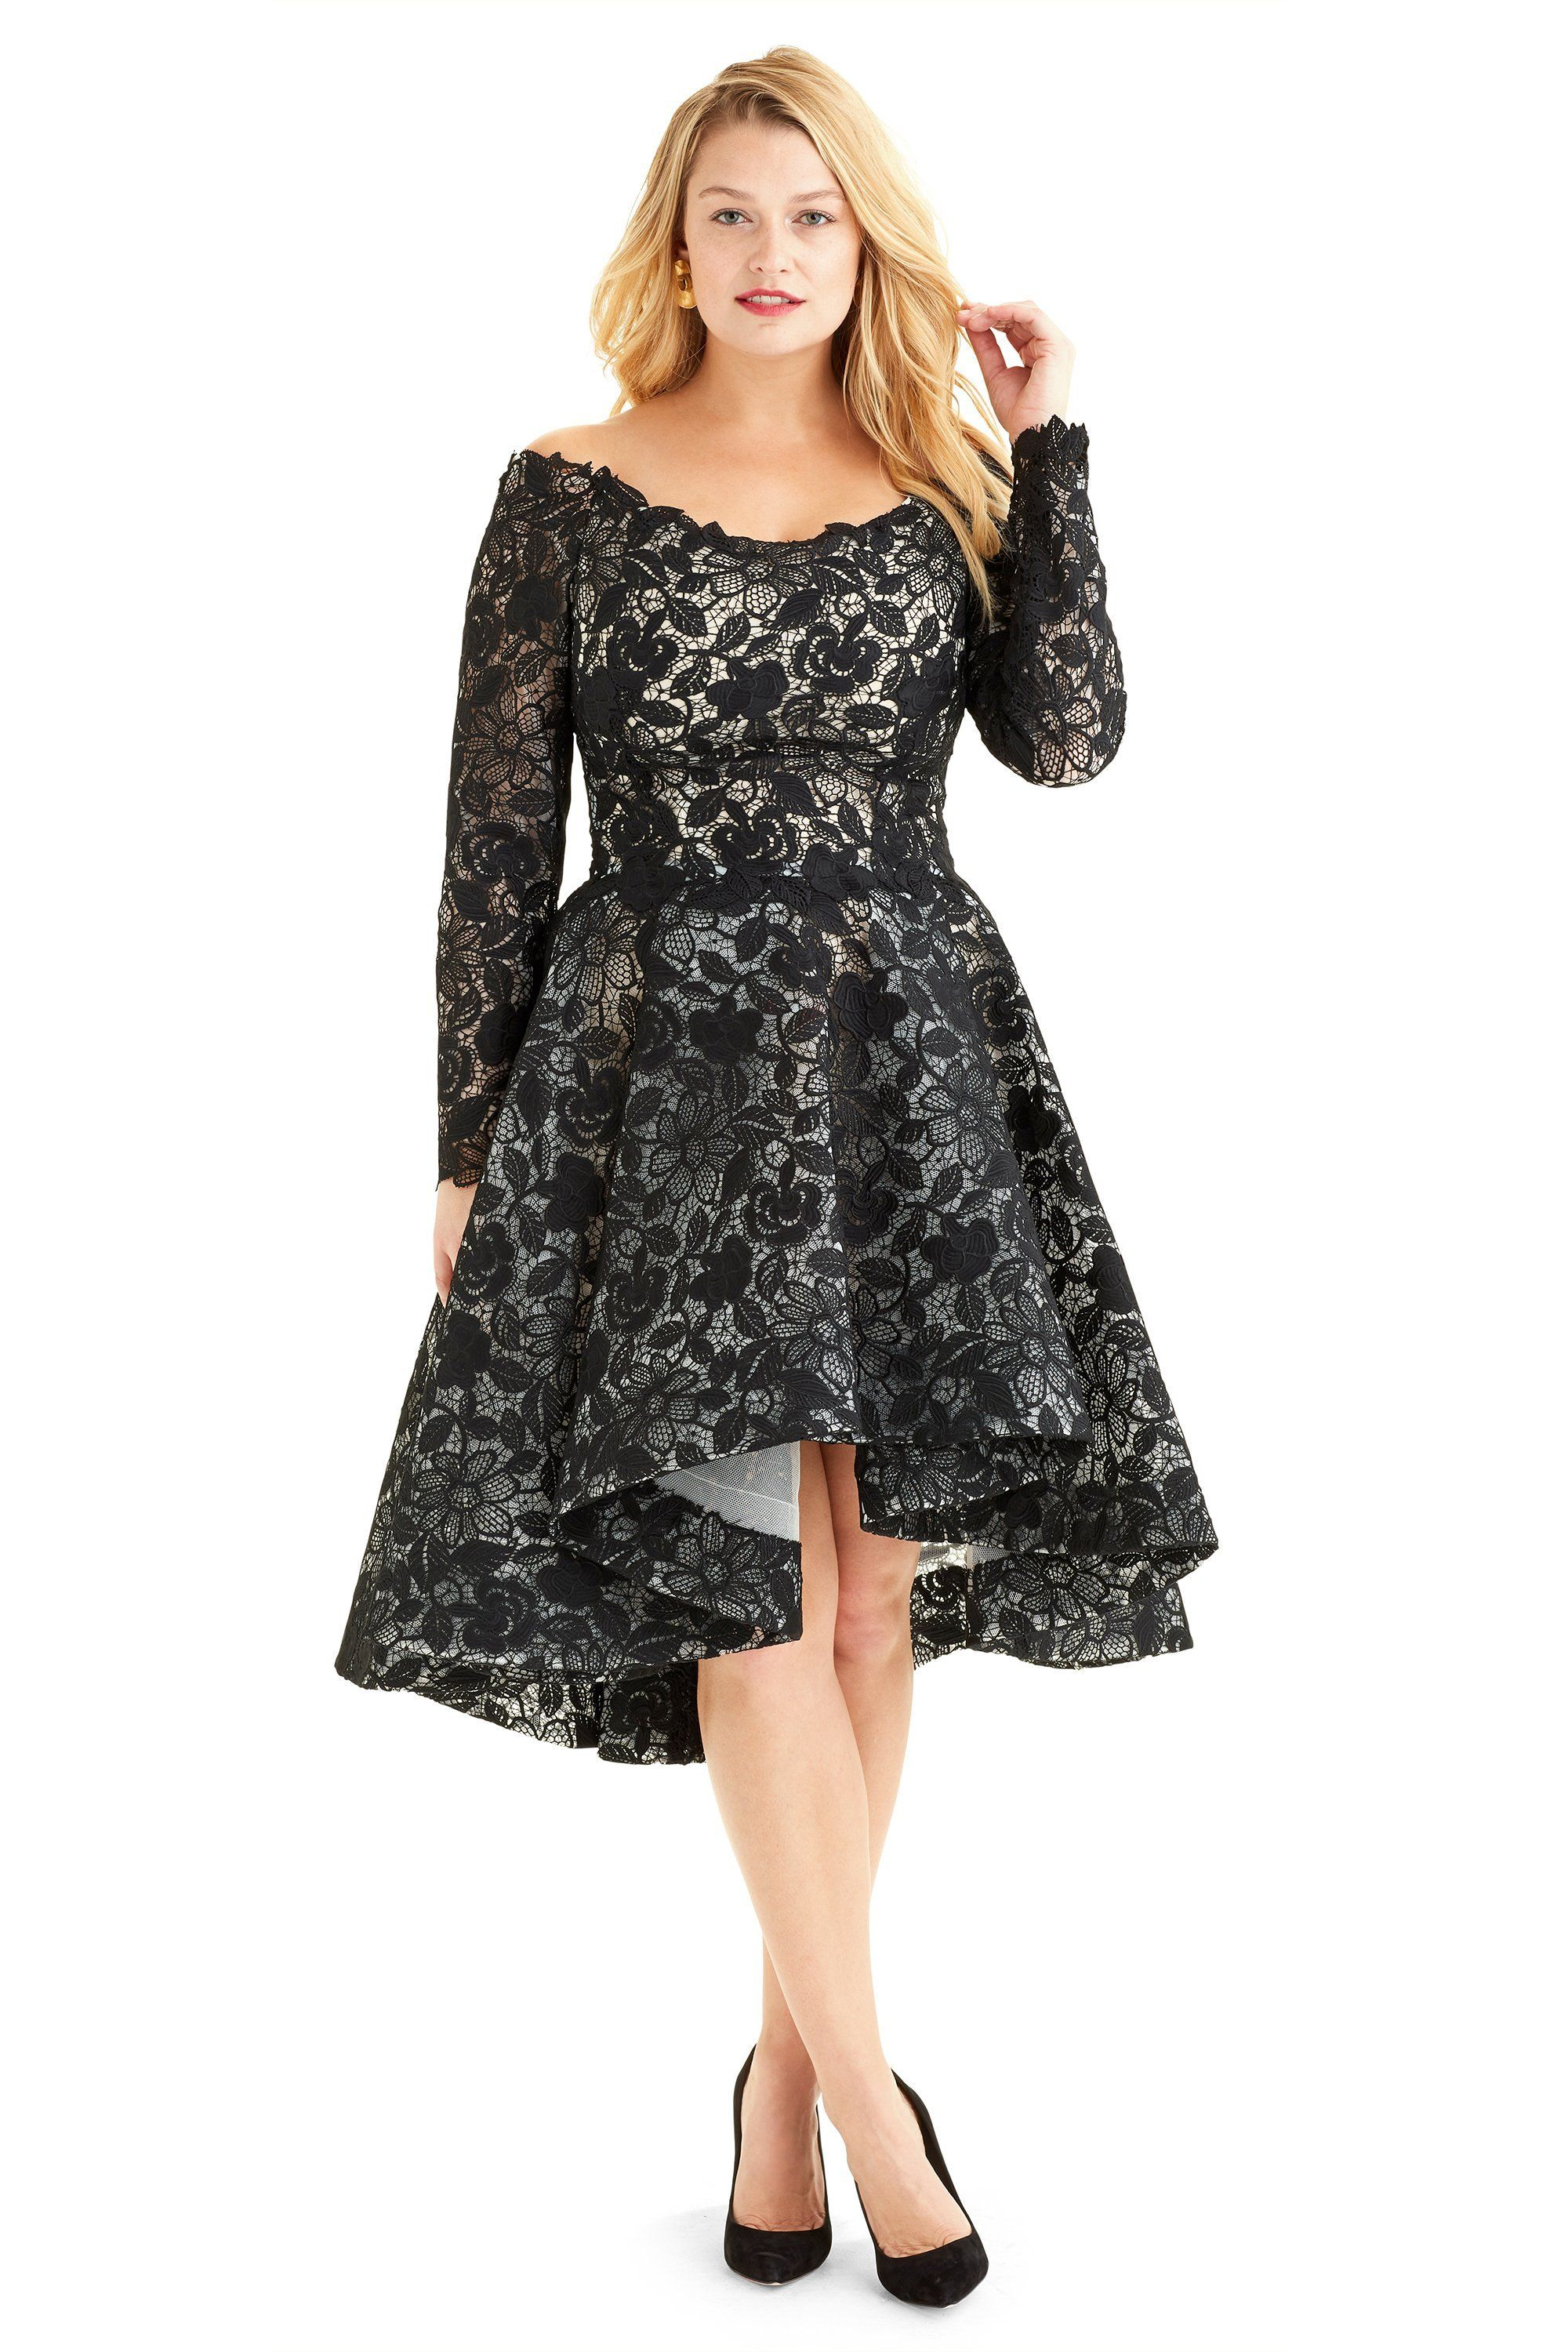 Monique lhuillier lace high low flared long sleeve cocktail dress